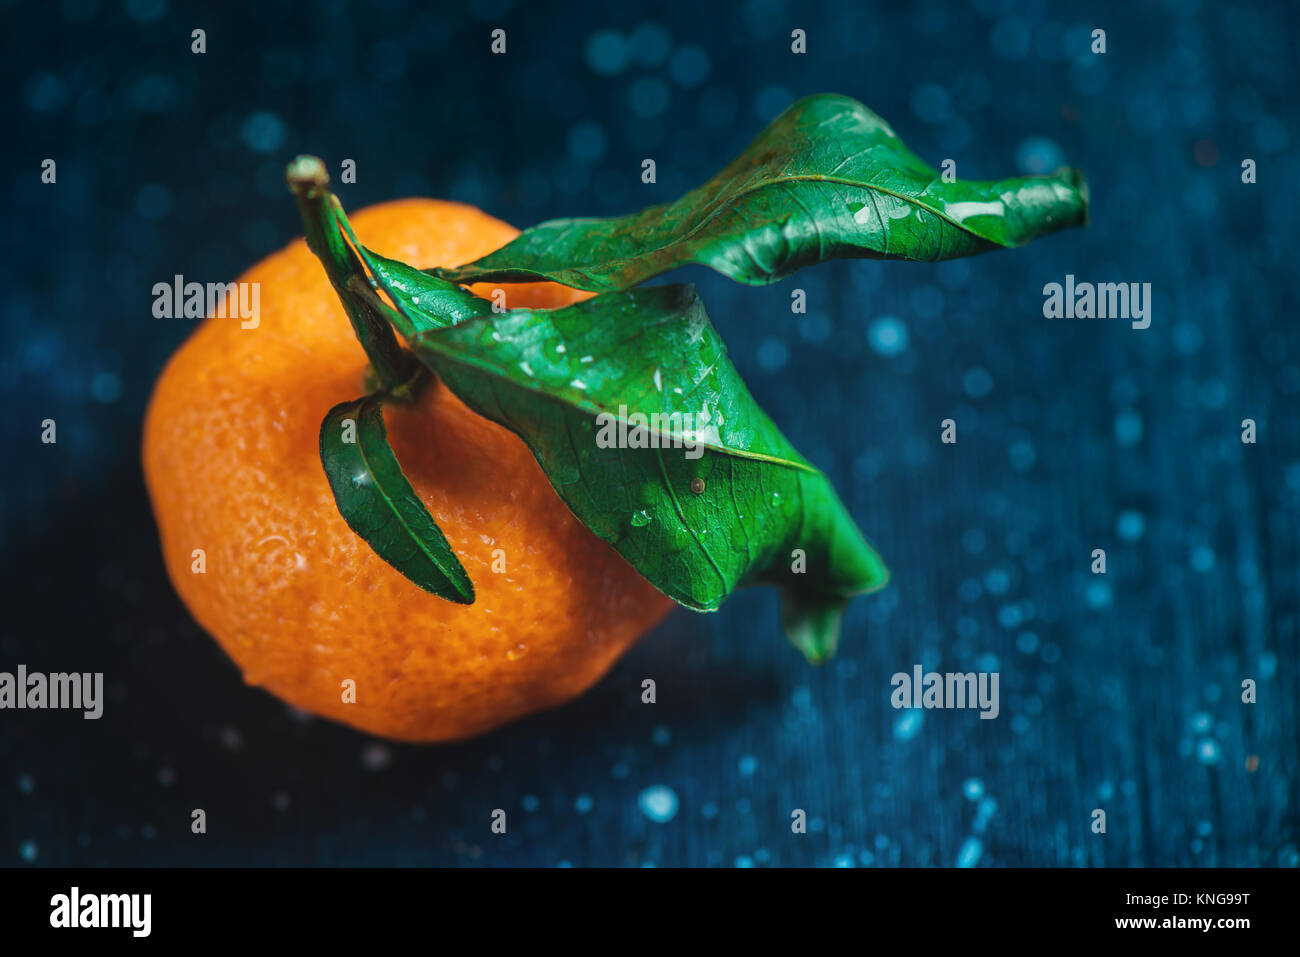 Tangerine close-up on a dark background. Water drops on a surface and green leaves. Dark food photography with vibrant - Stock Image